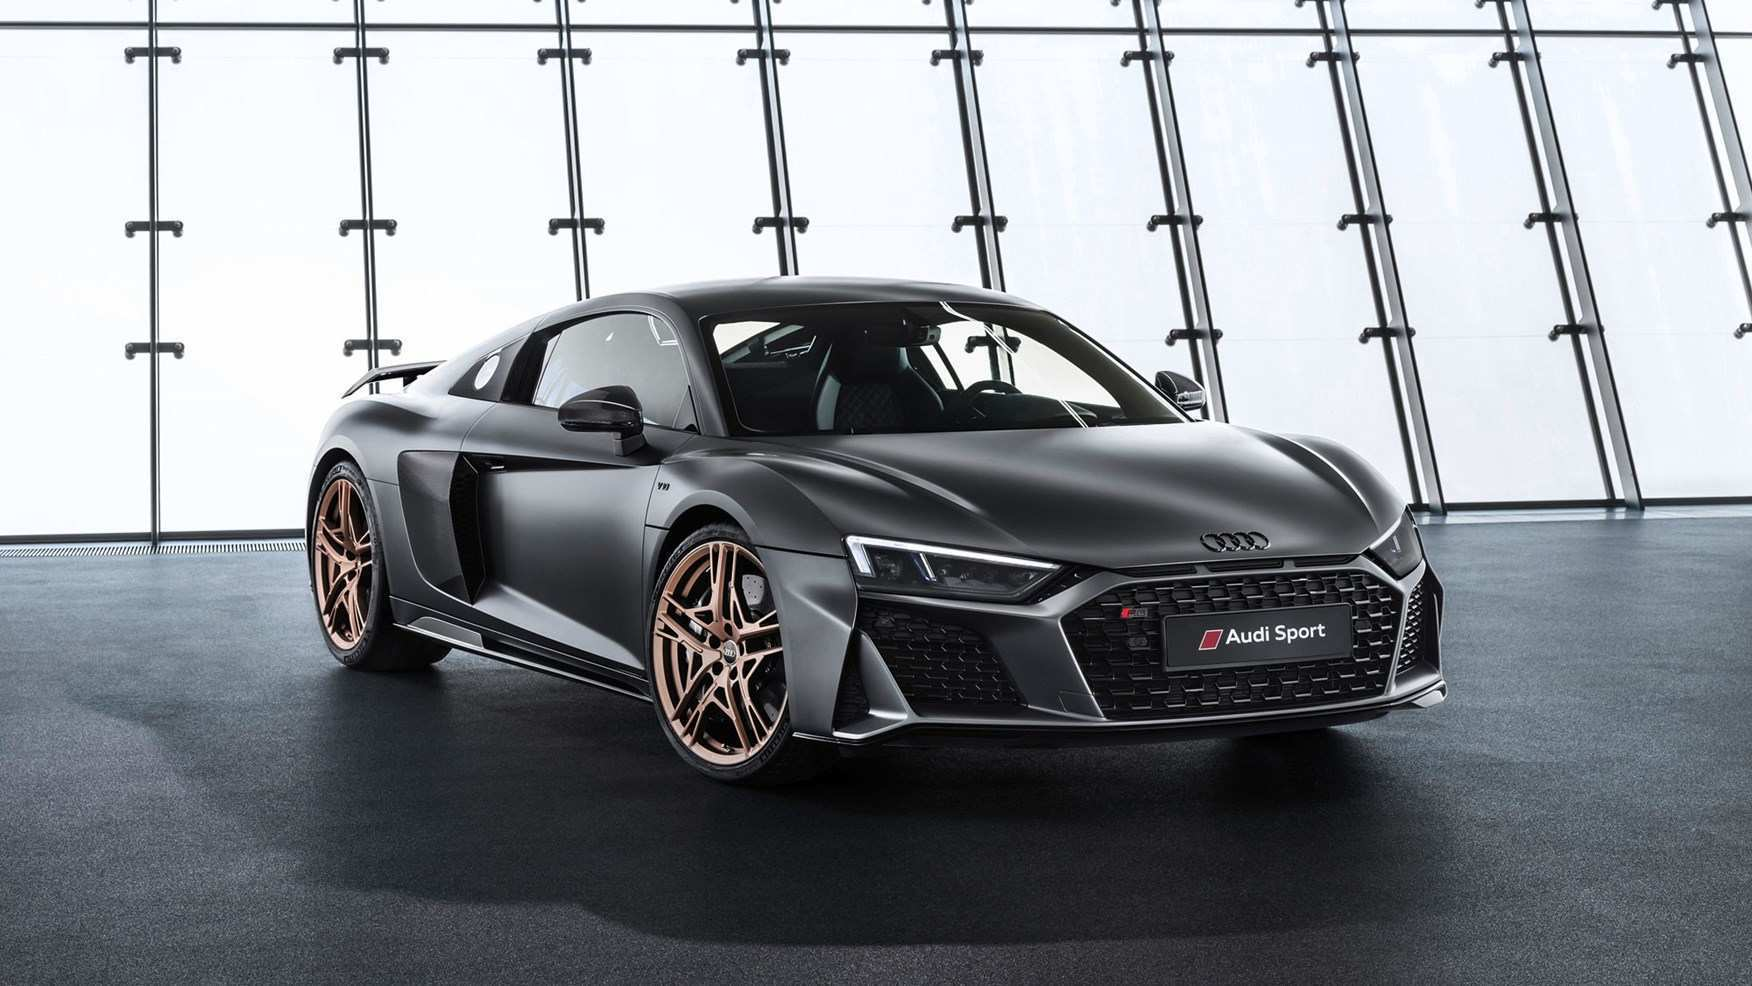 19 The 2019 Audi R8 V10 Spyder Prices